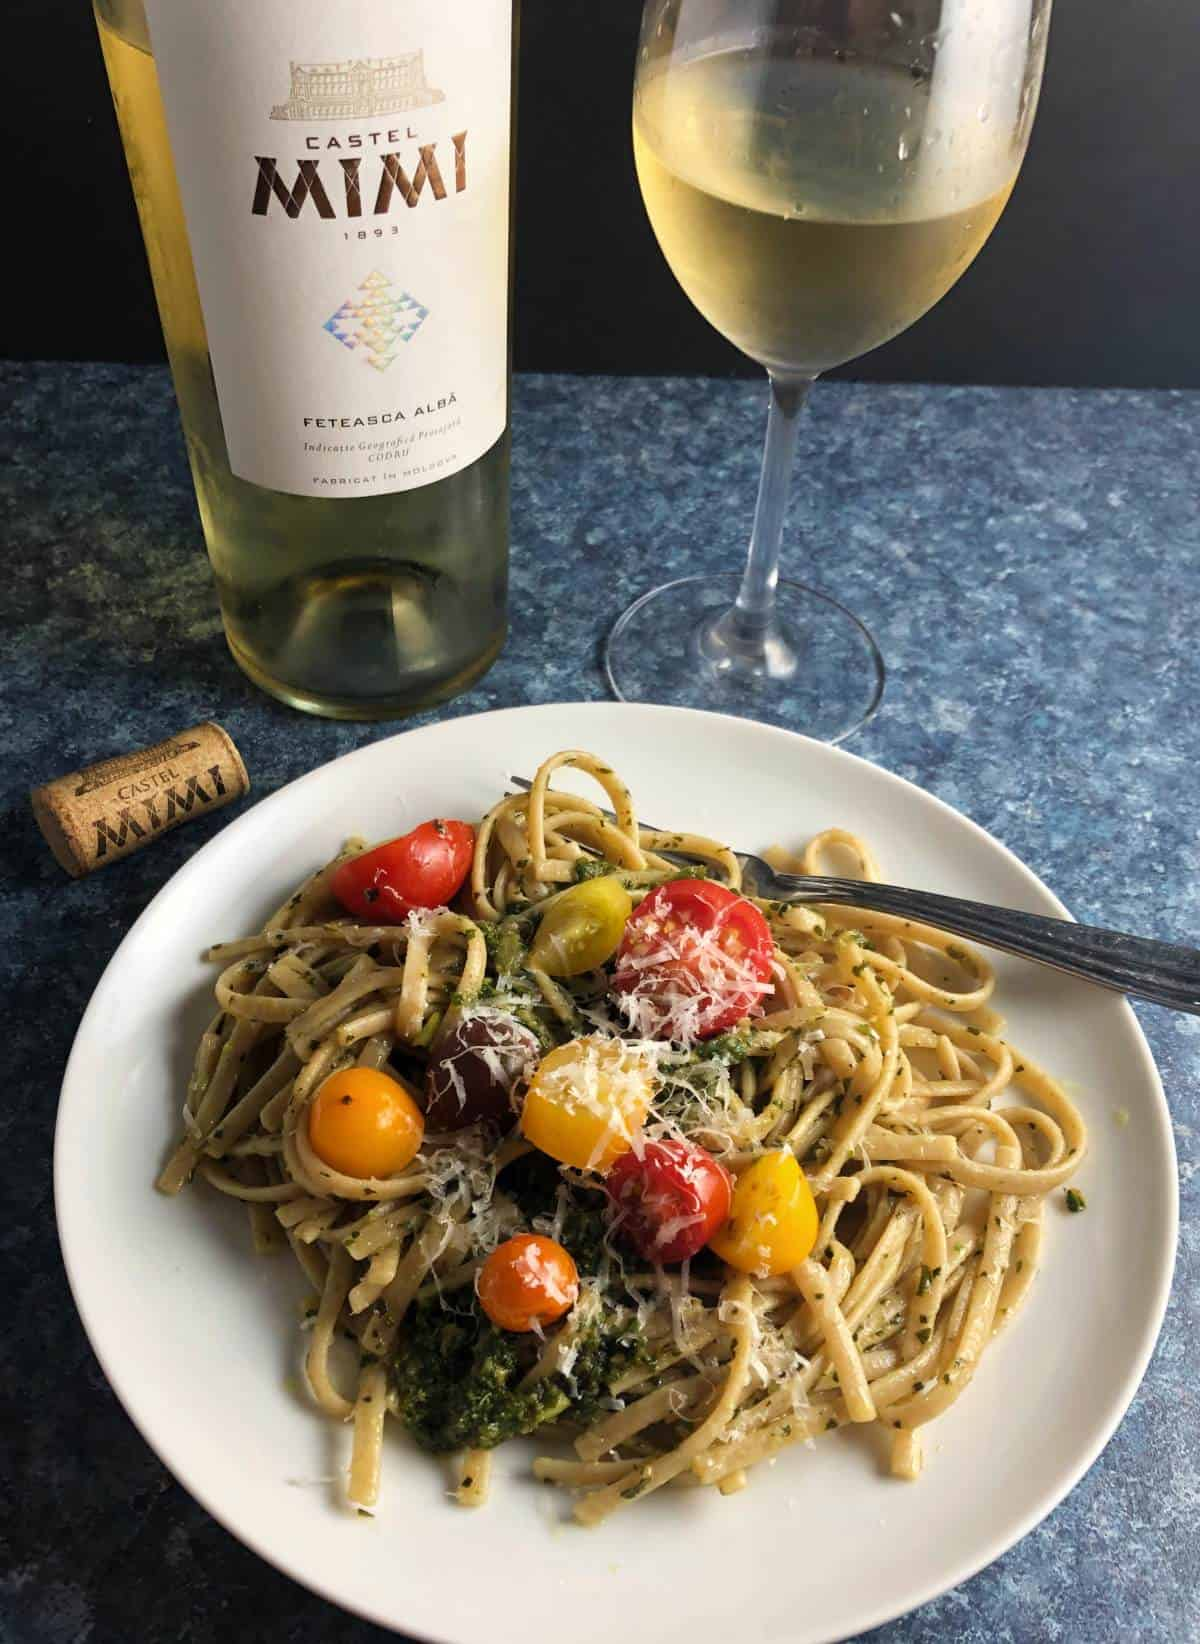 pasta with pesto topped with tomatoes served with a white wine.